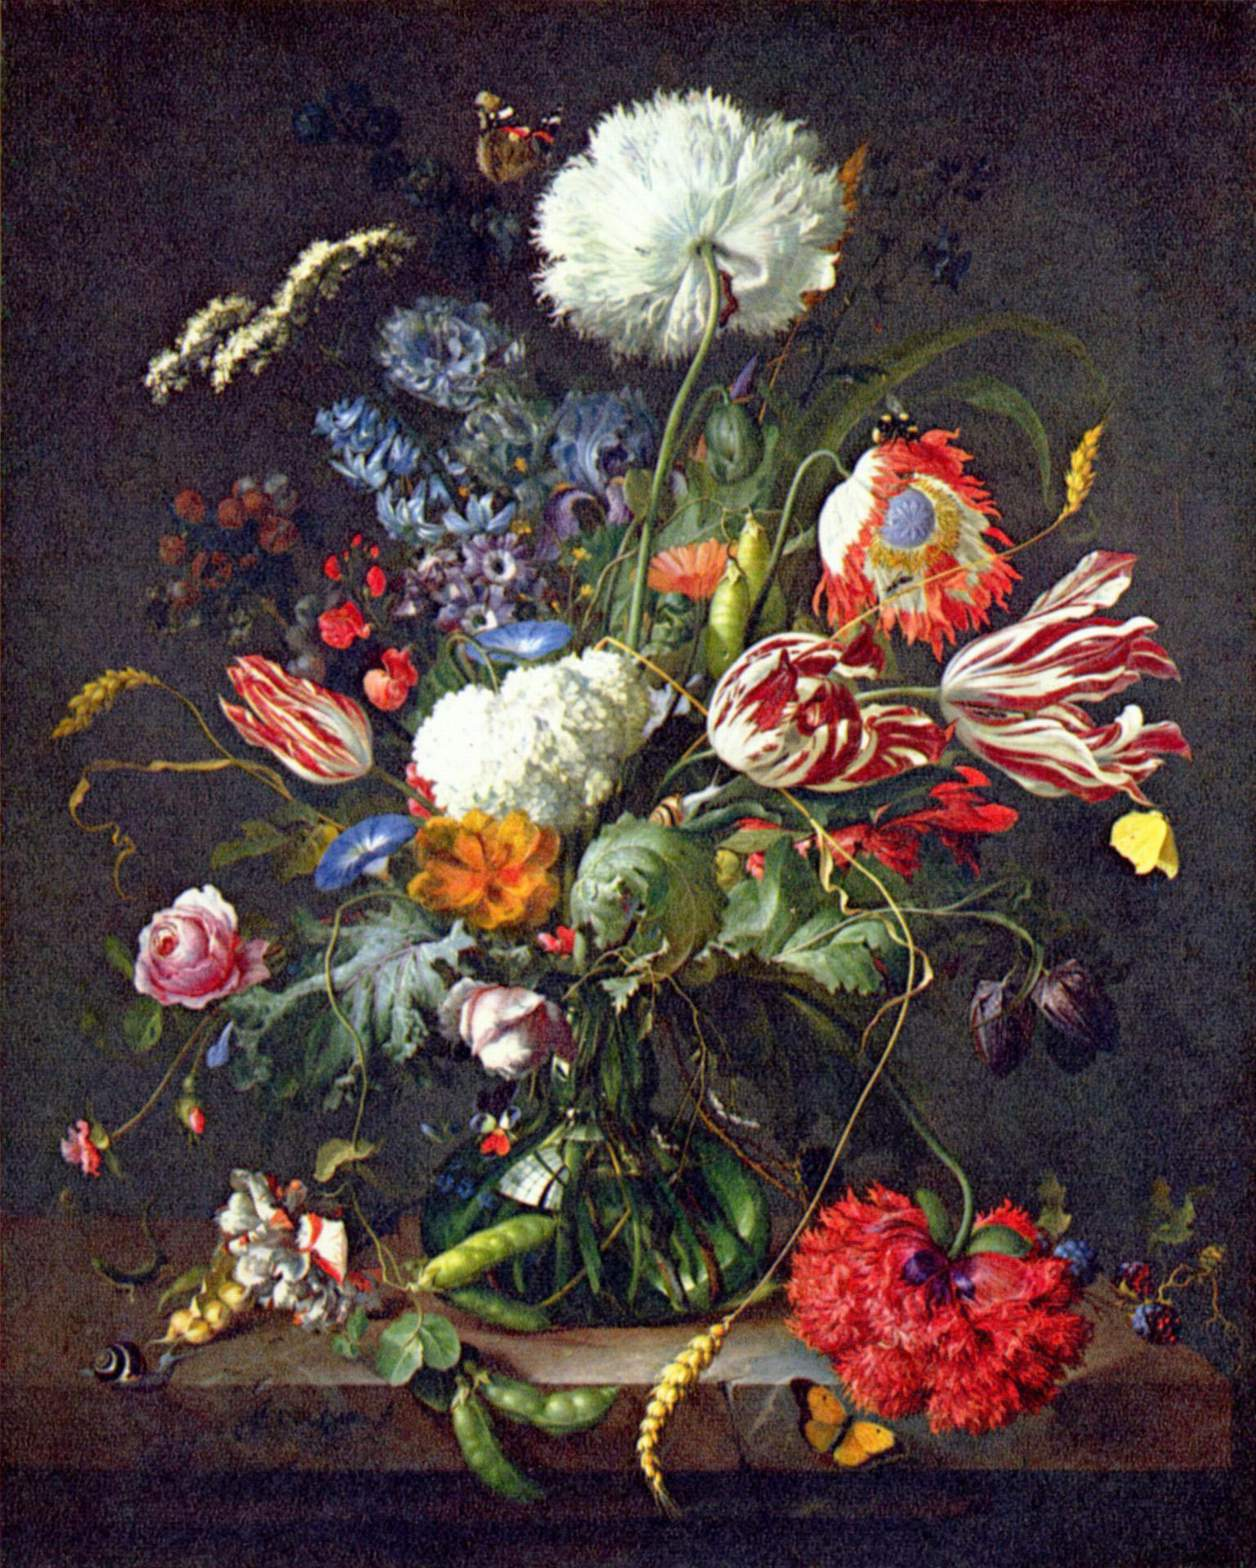 Jan Davidsz. de Heem (Dutch Baroque painter, 1606-1683-84) Still Life